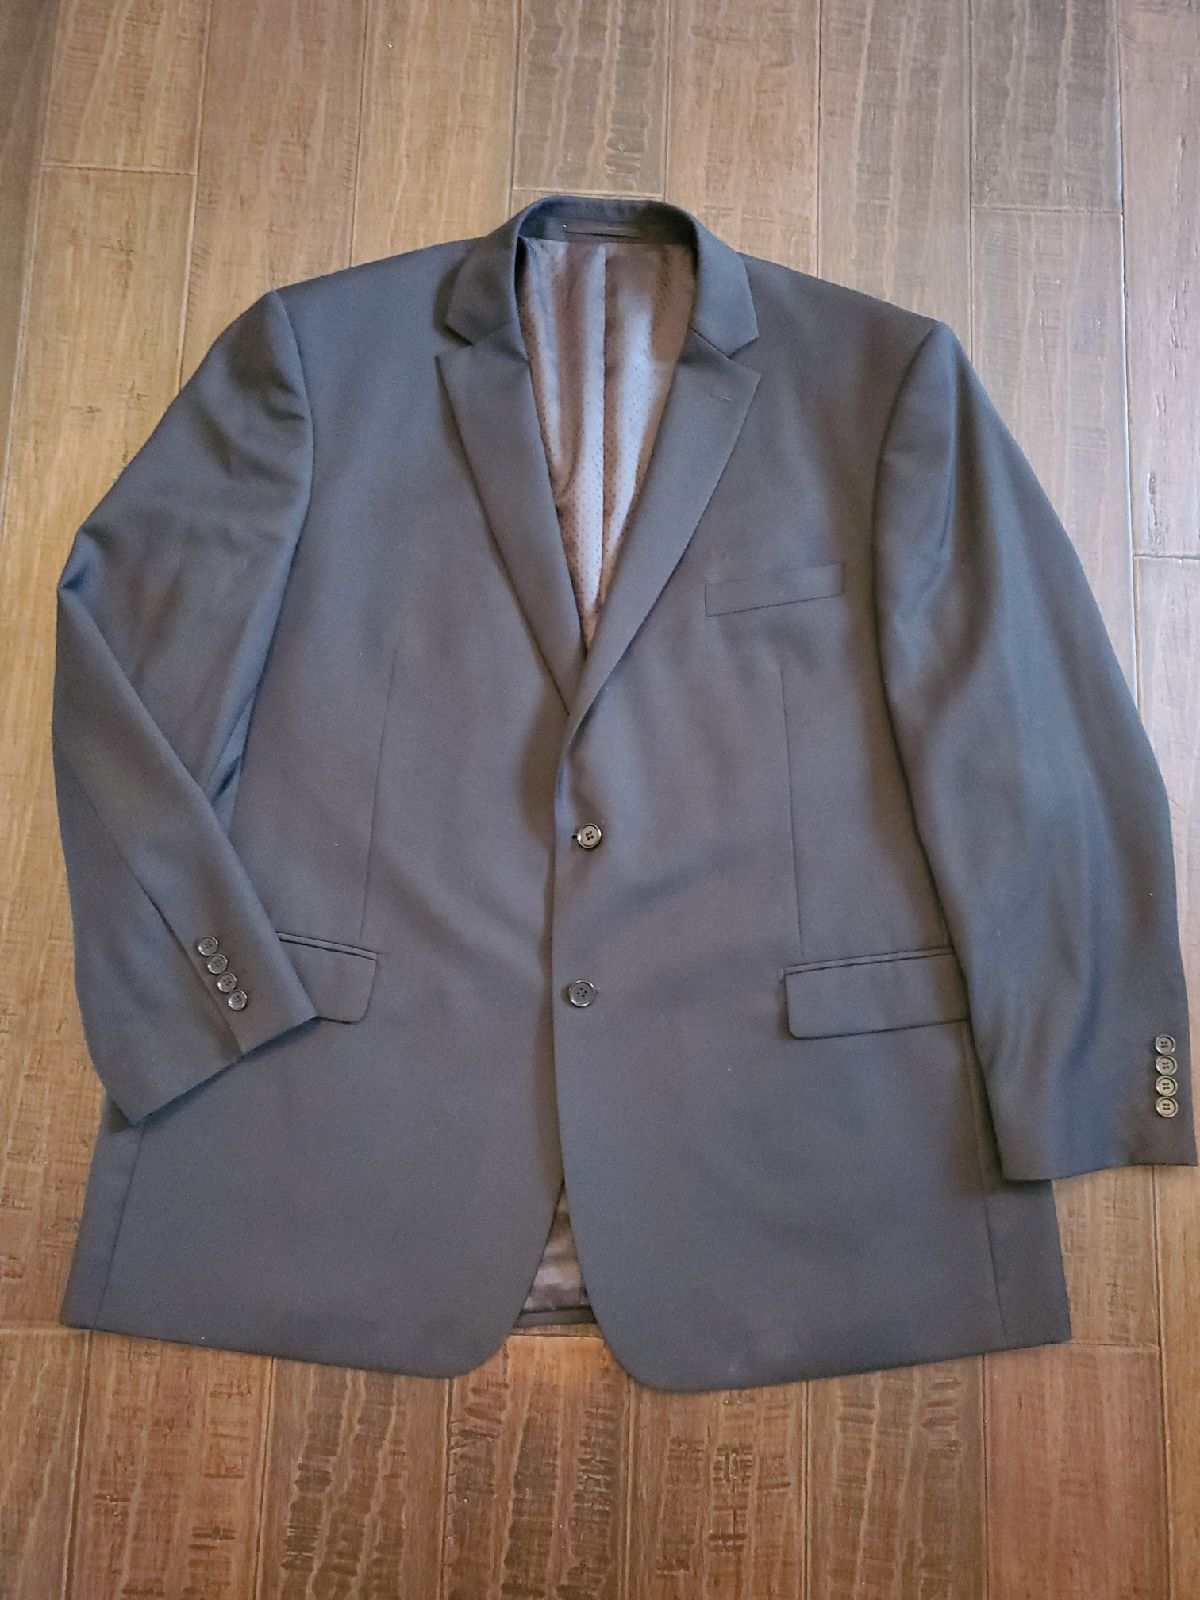 Mantoni Italian Men's suit jacket